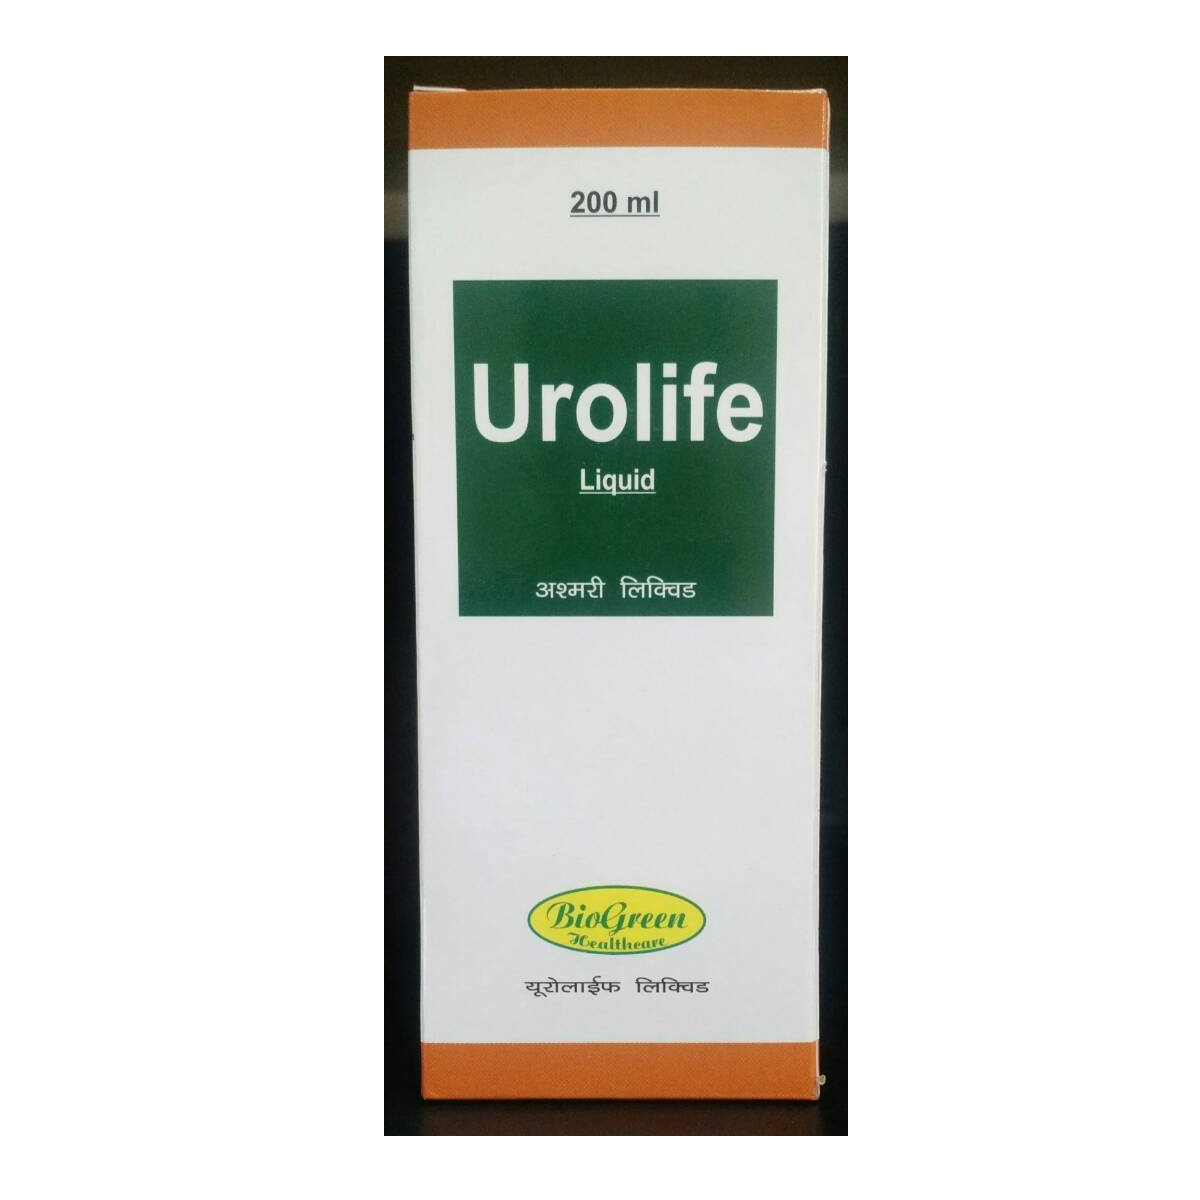 Urolife Liquid In Upper Siang